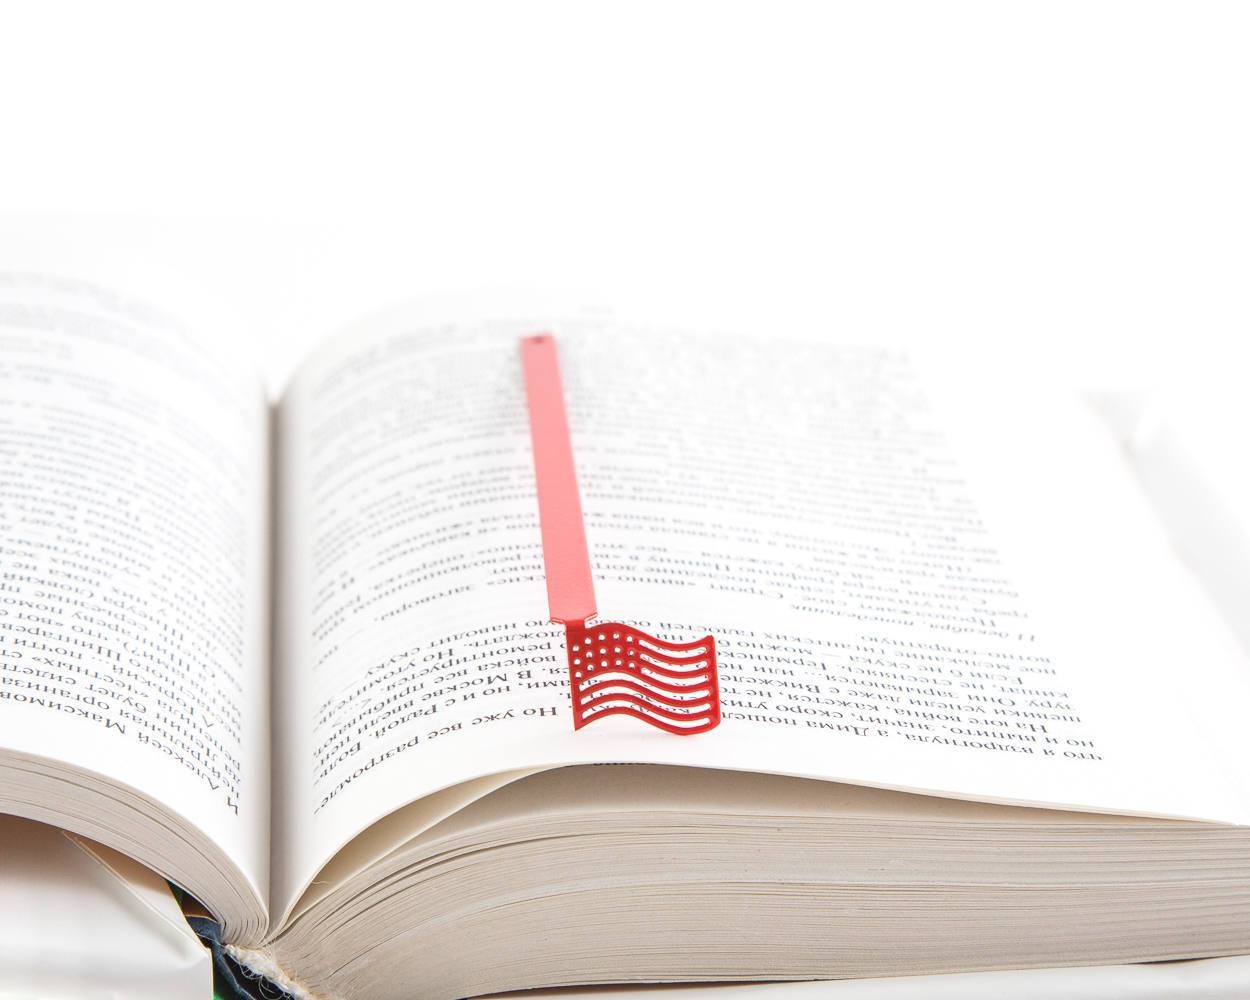 Stars & Stripes Bookmark // metal book bookmark // US flag // unique bookmark design  // free worldwide shipping